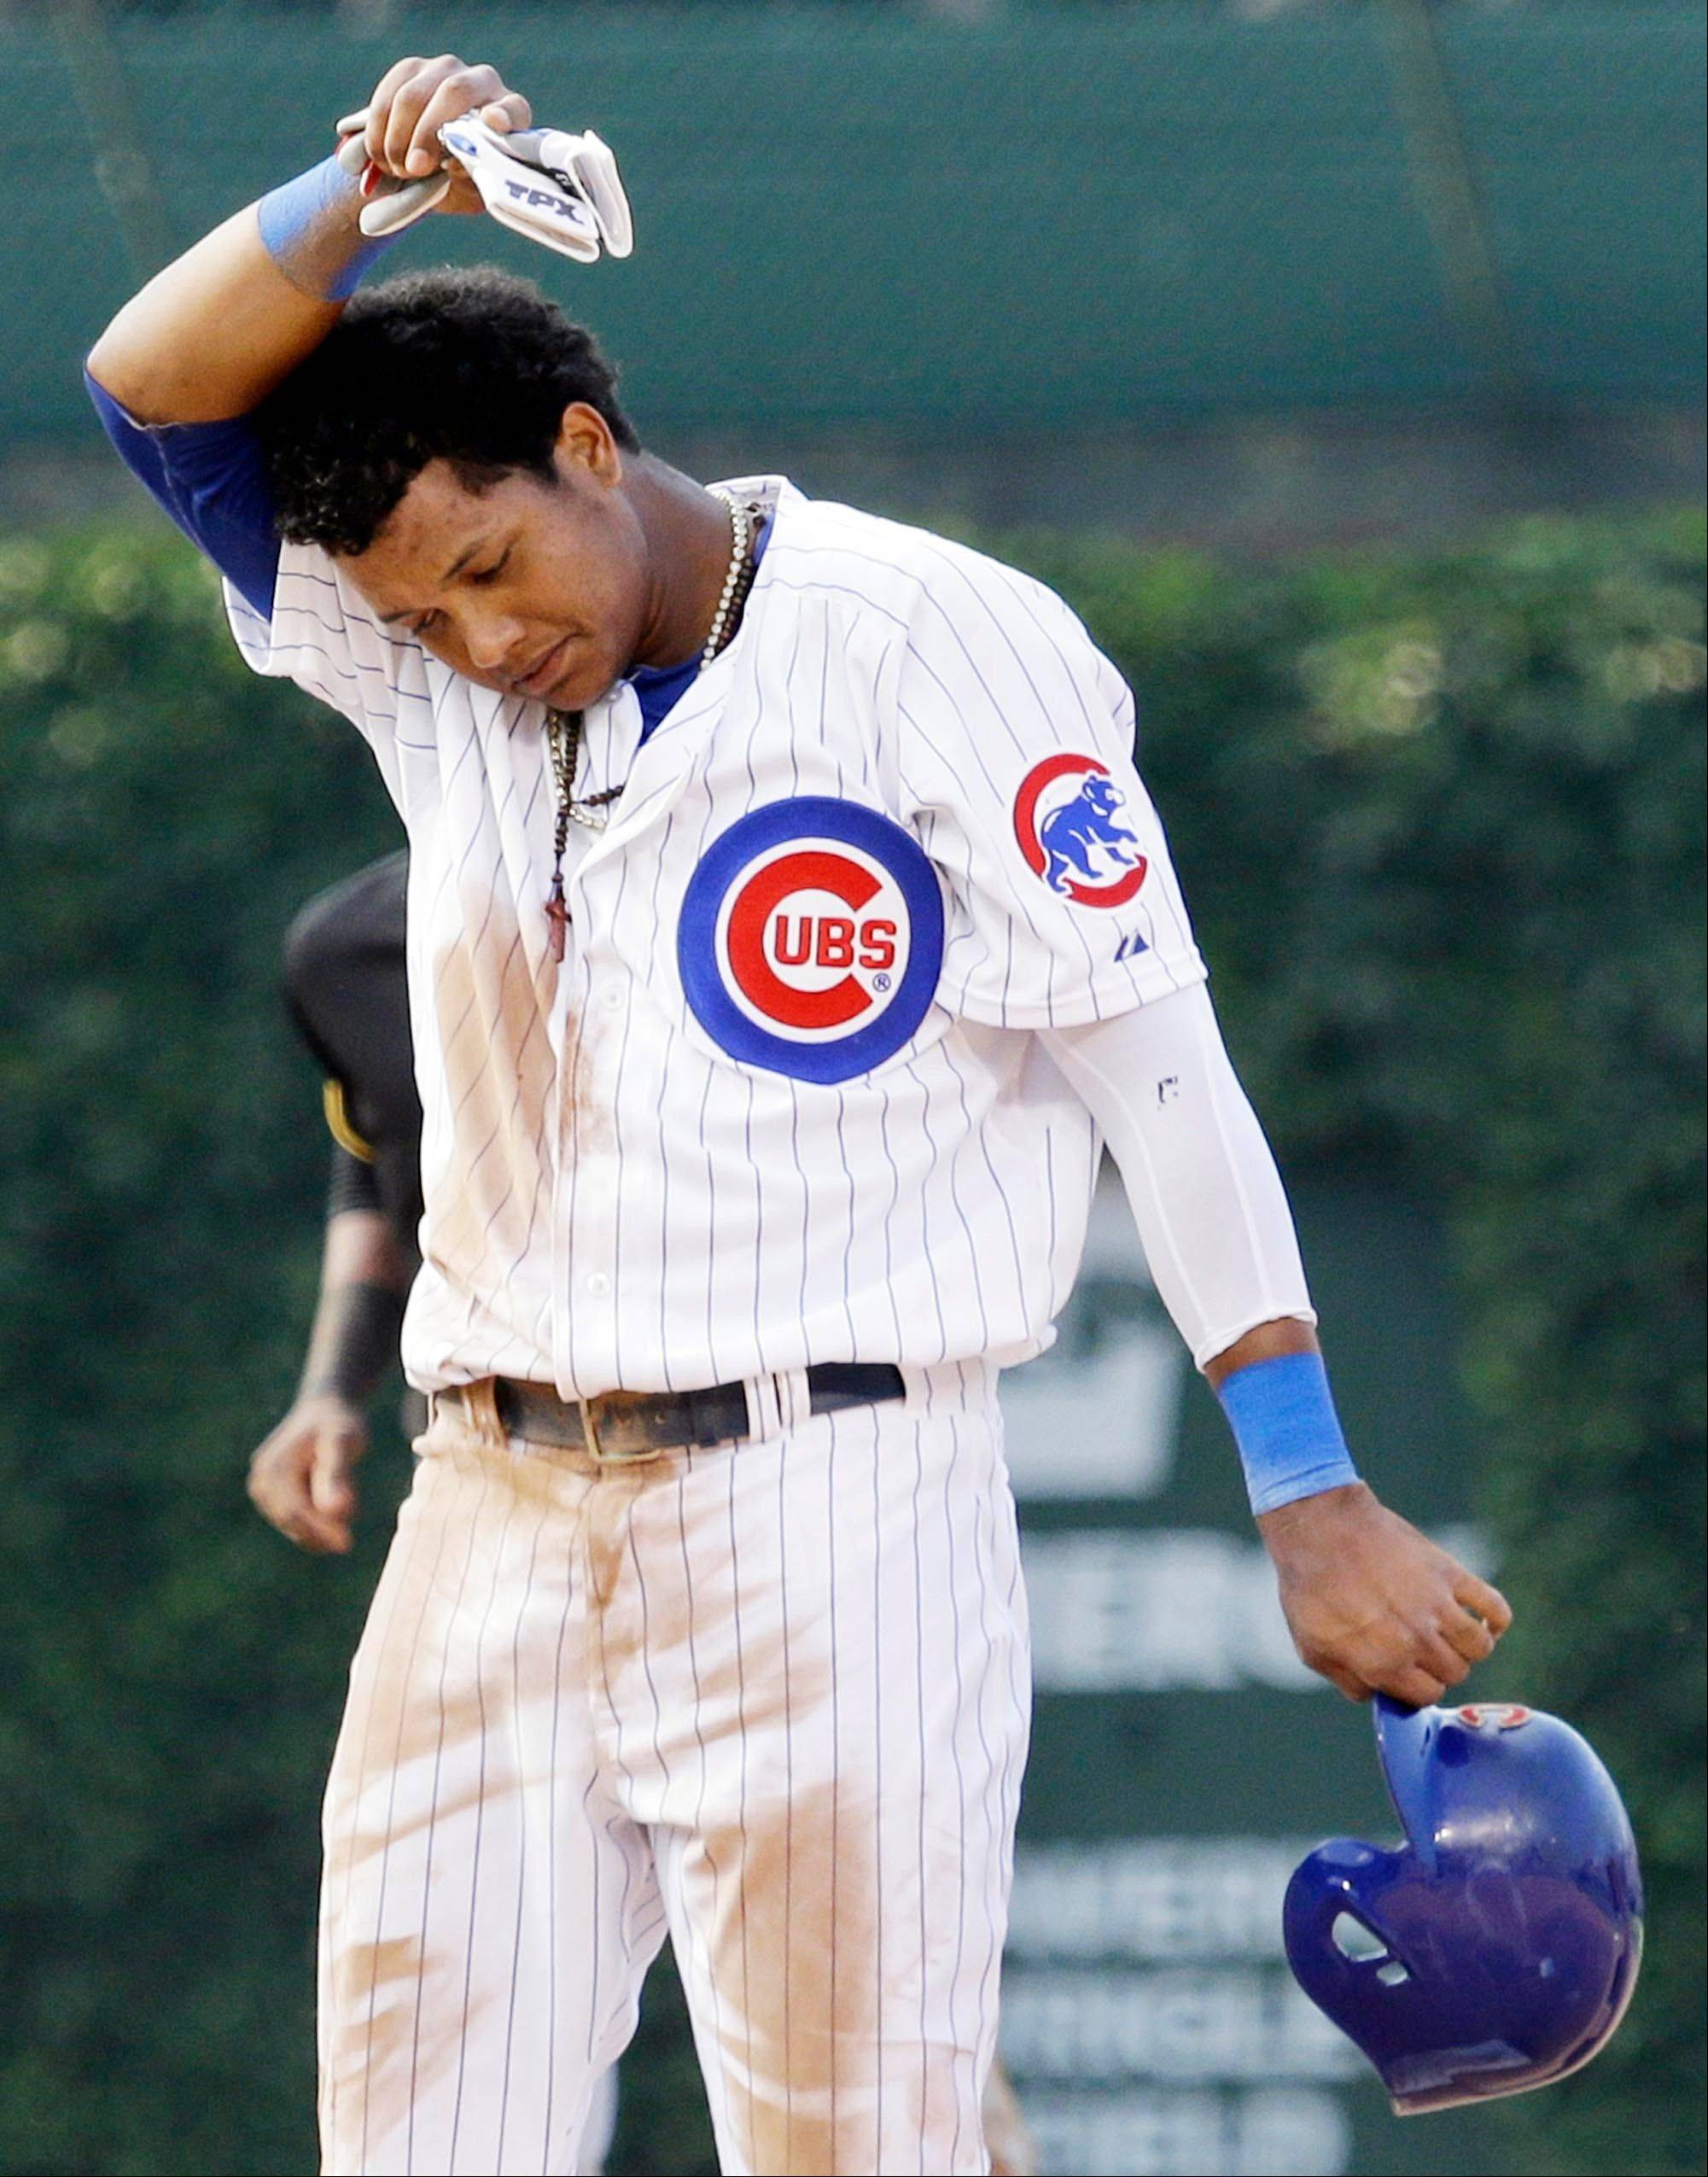 The Cubs' Starlin Castro wipes his face after he was tagged out by Pittsburgh Pirates second baseman Neil Walker during the eighth inning Friday in Chicago